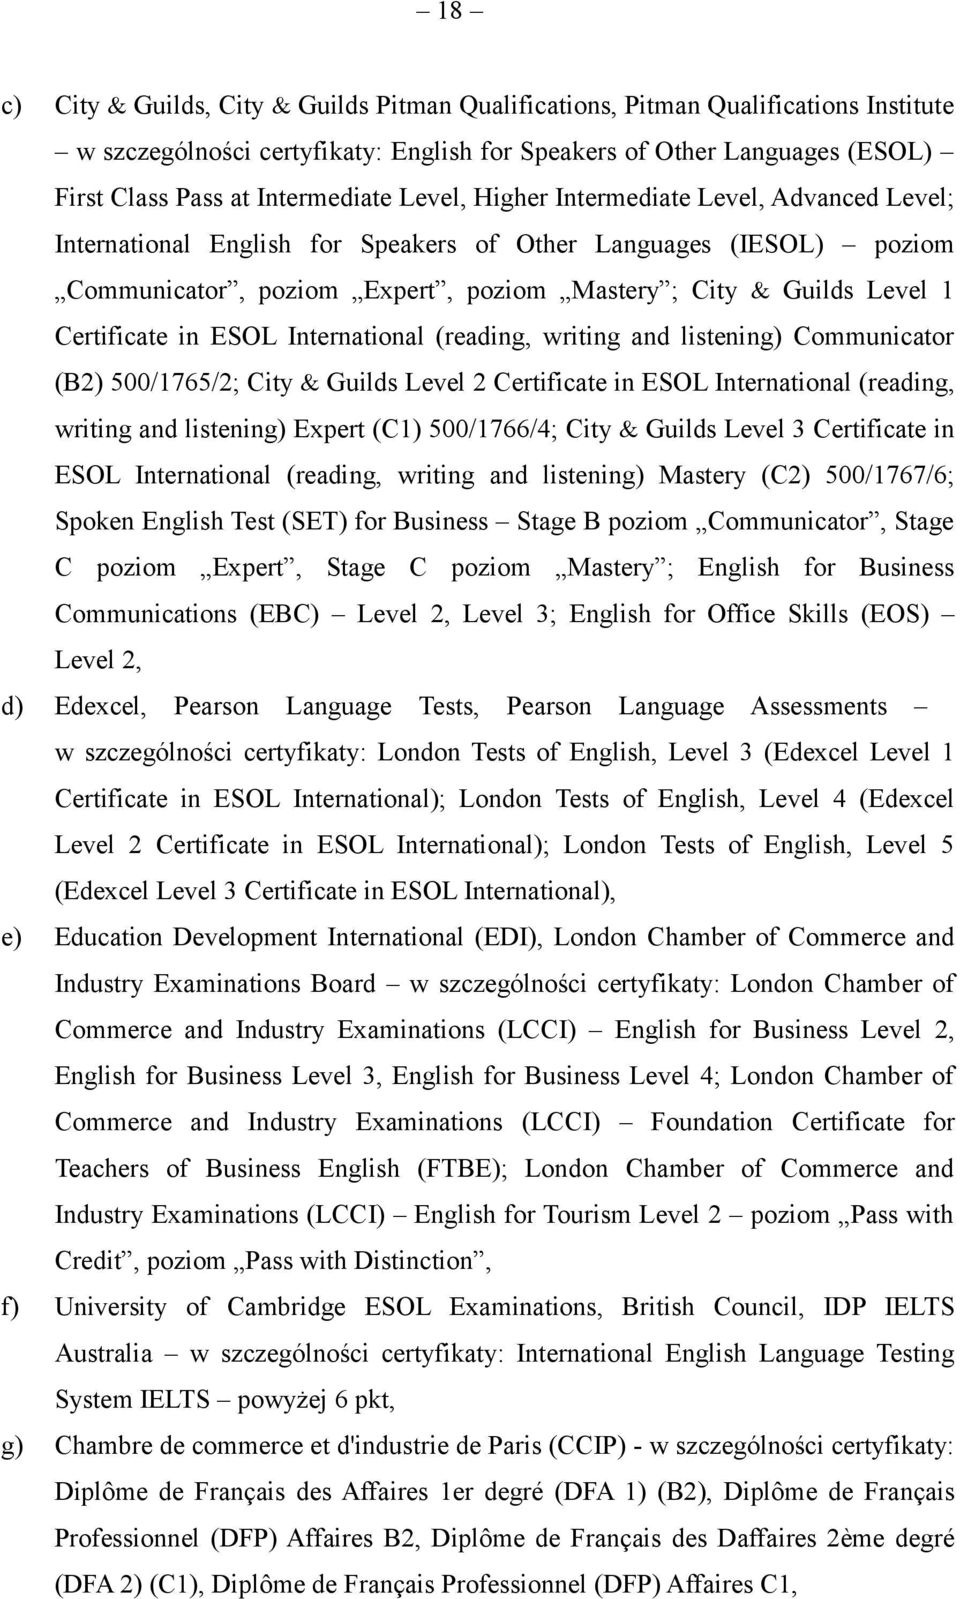 ESOL International (reading, writing and listening) Communicator (B2) 500/1765/2; City Guilds Level 2 Certificate in ESOL International (reading, writing and listening) Expert (C1) 500/1766/4; City